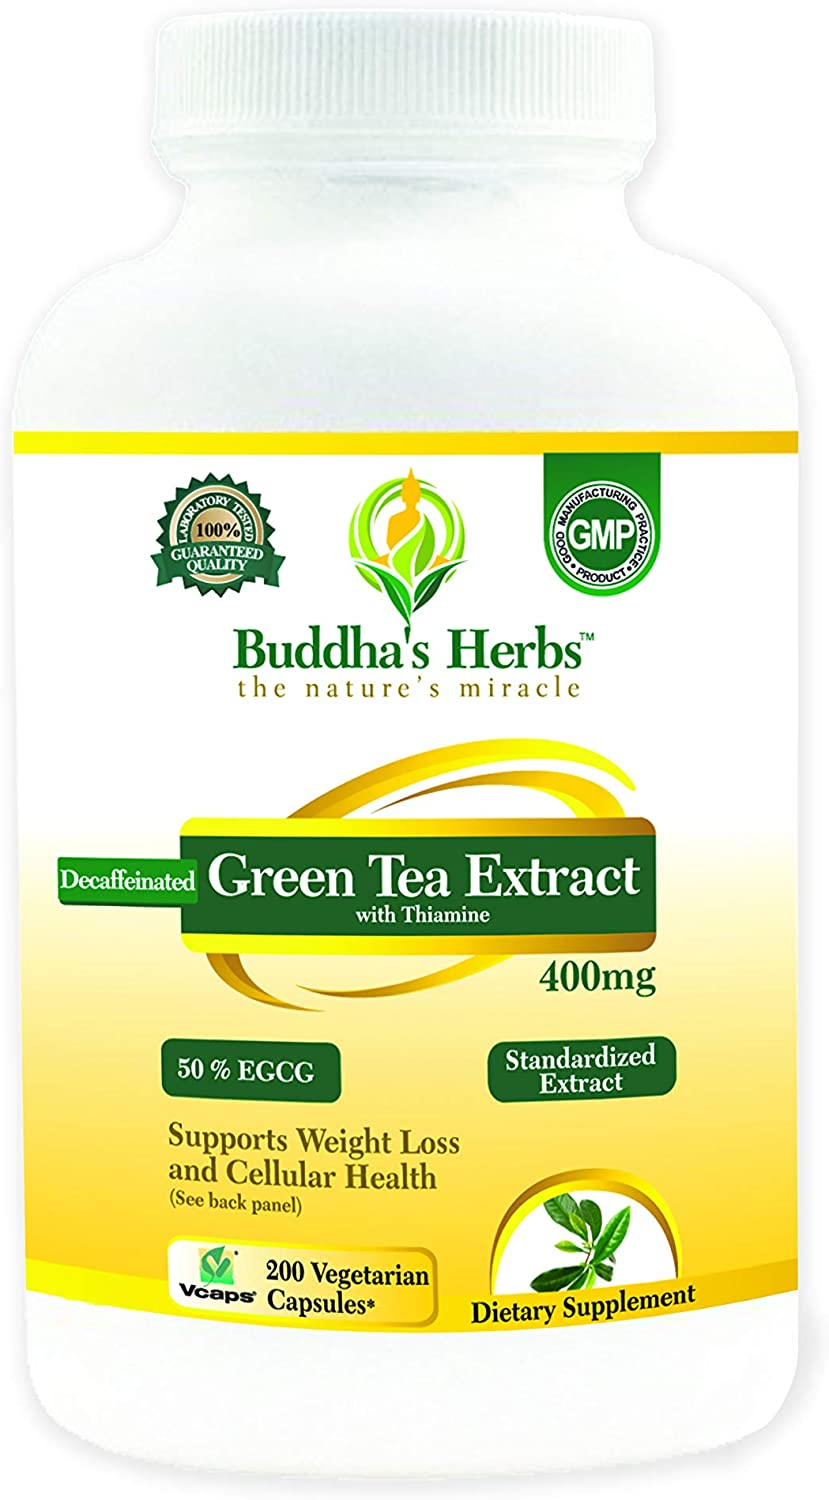 Decaffeinated Green Tea Extract - 400mg Max 77% OFF Veg 50% 200 EGCG Cap Don't miss the campaign